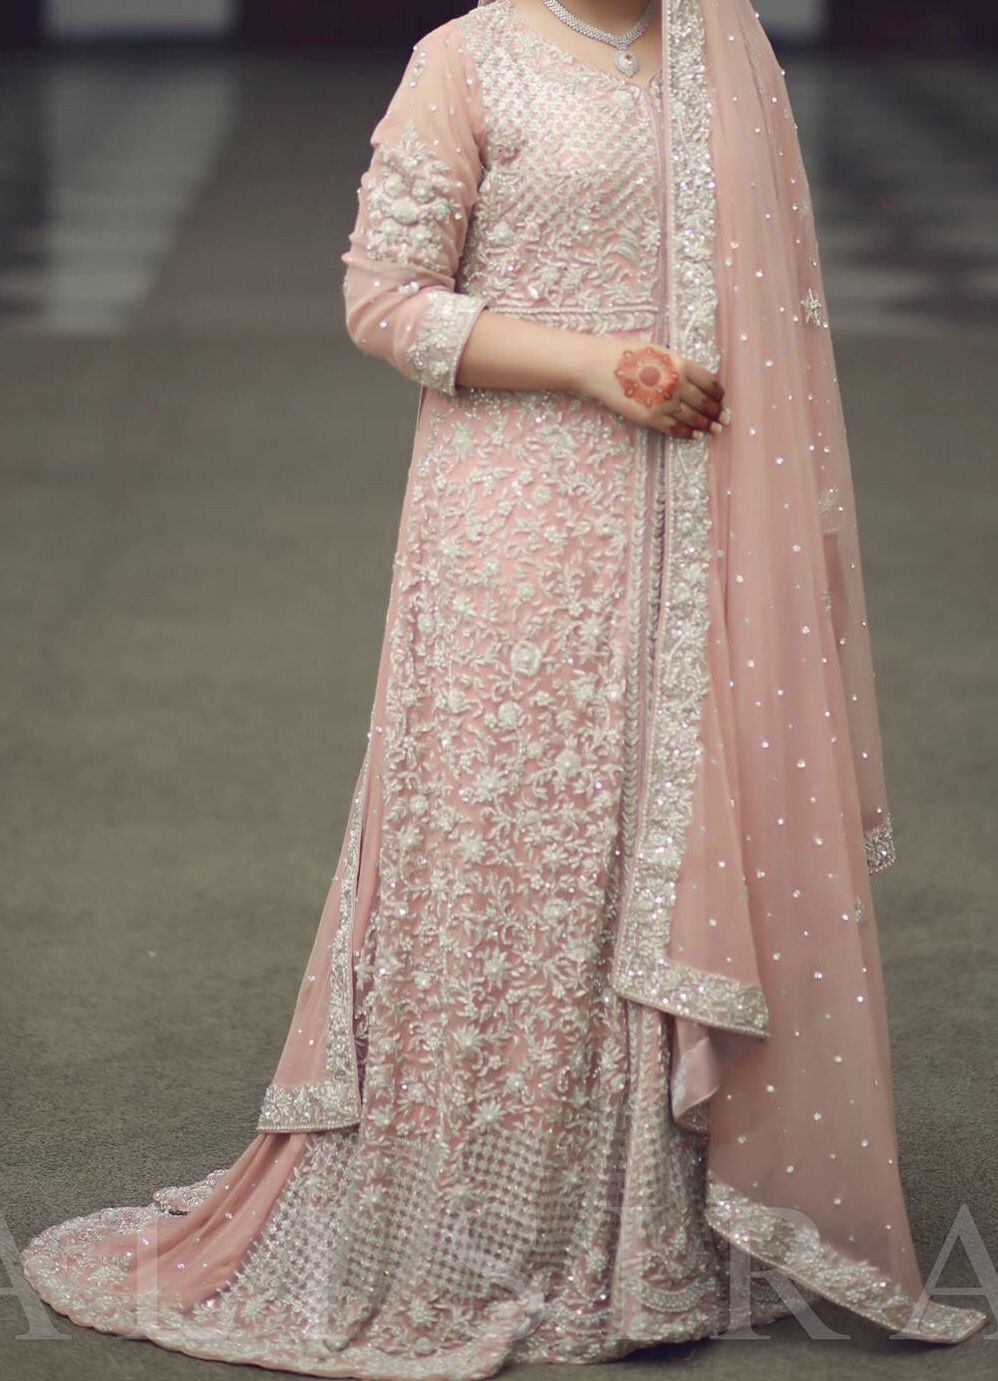 Pin by MARIA Kashif on dress design Bridal dress design